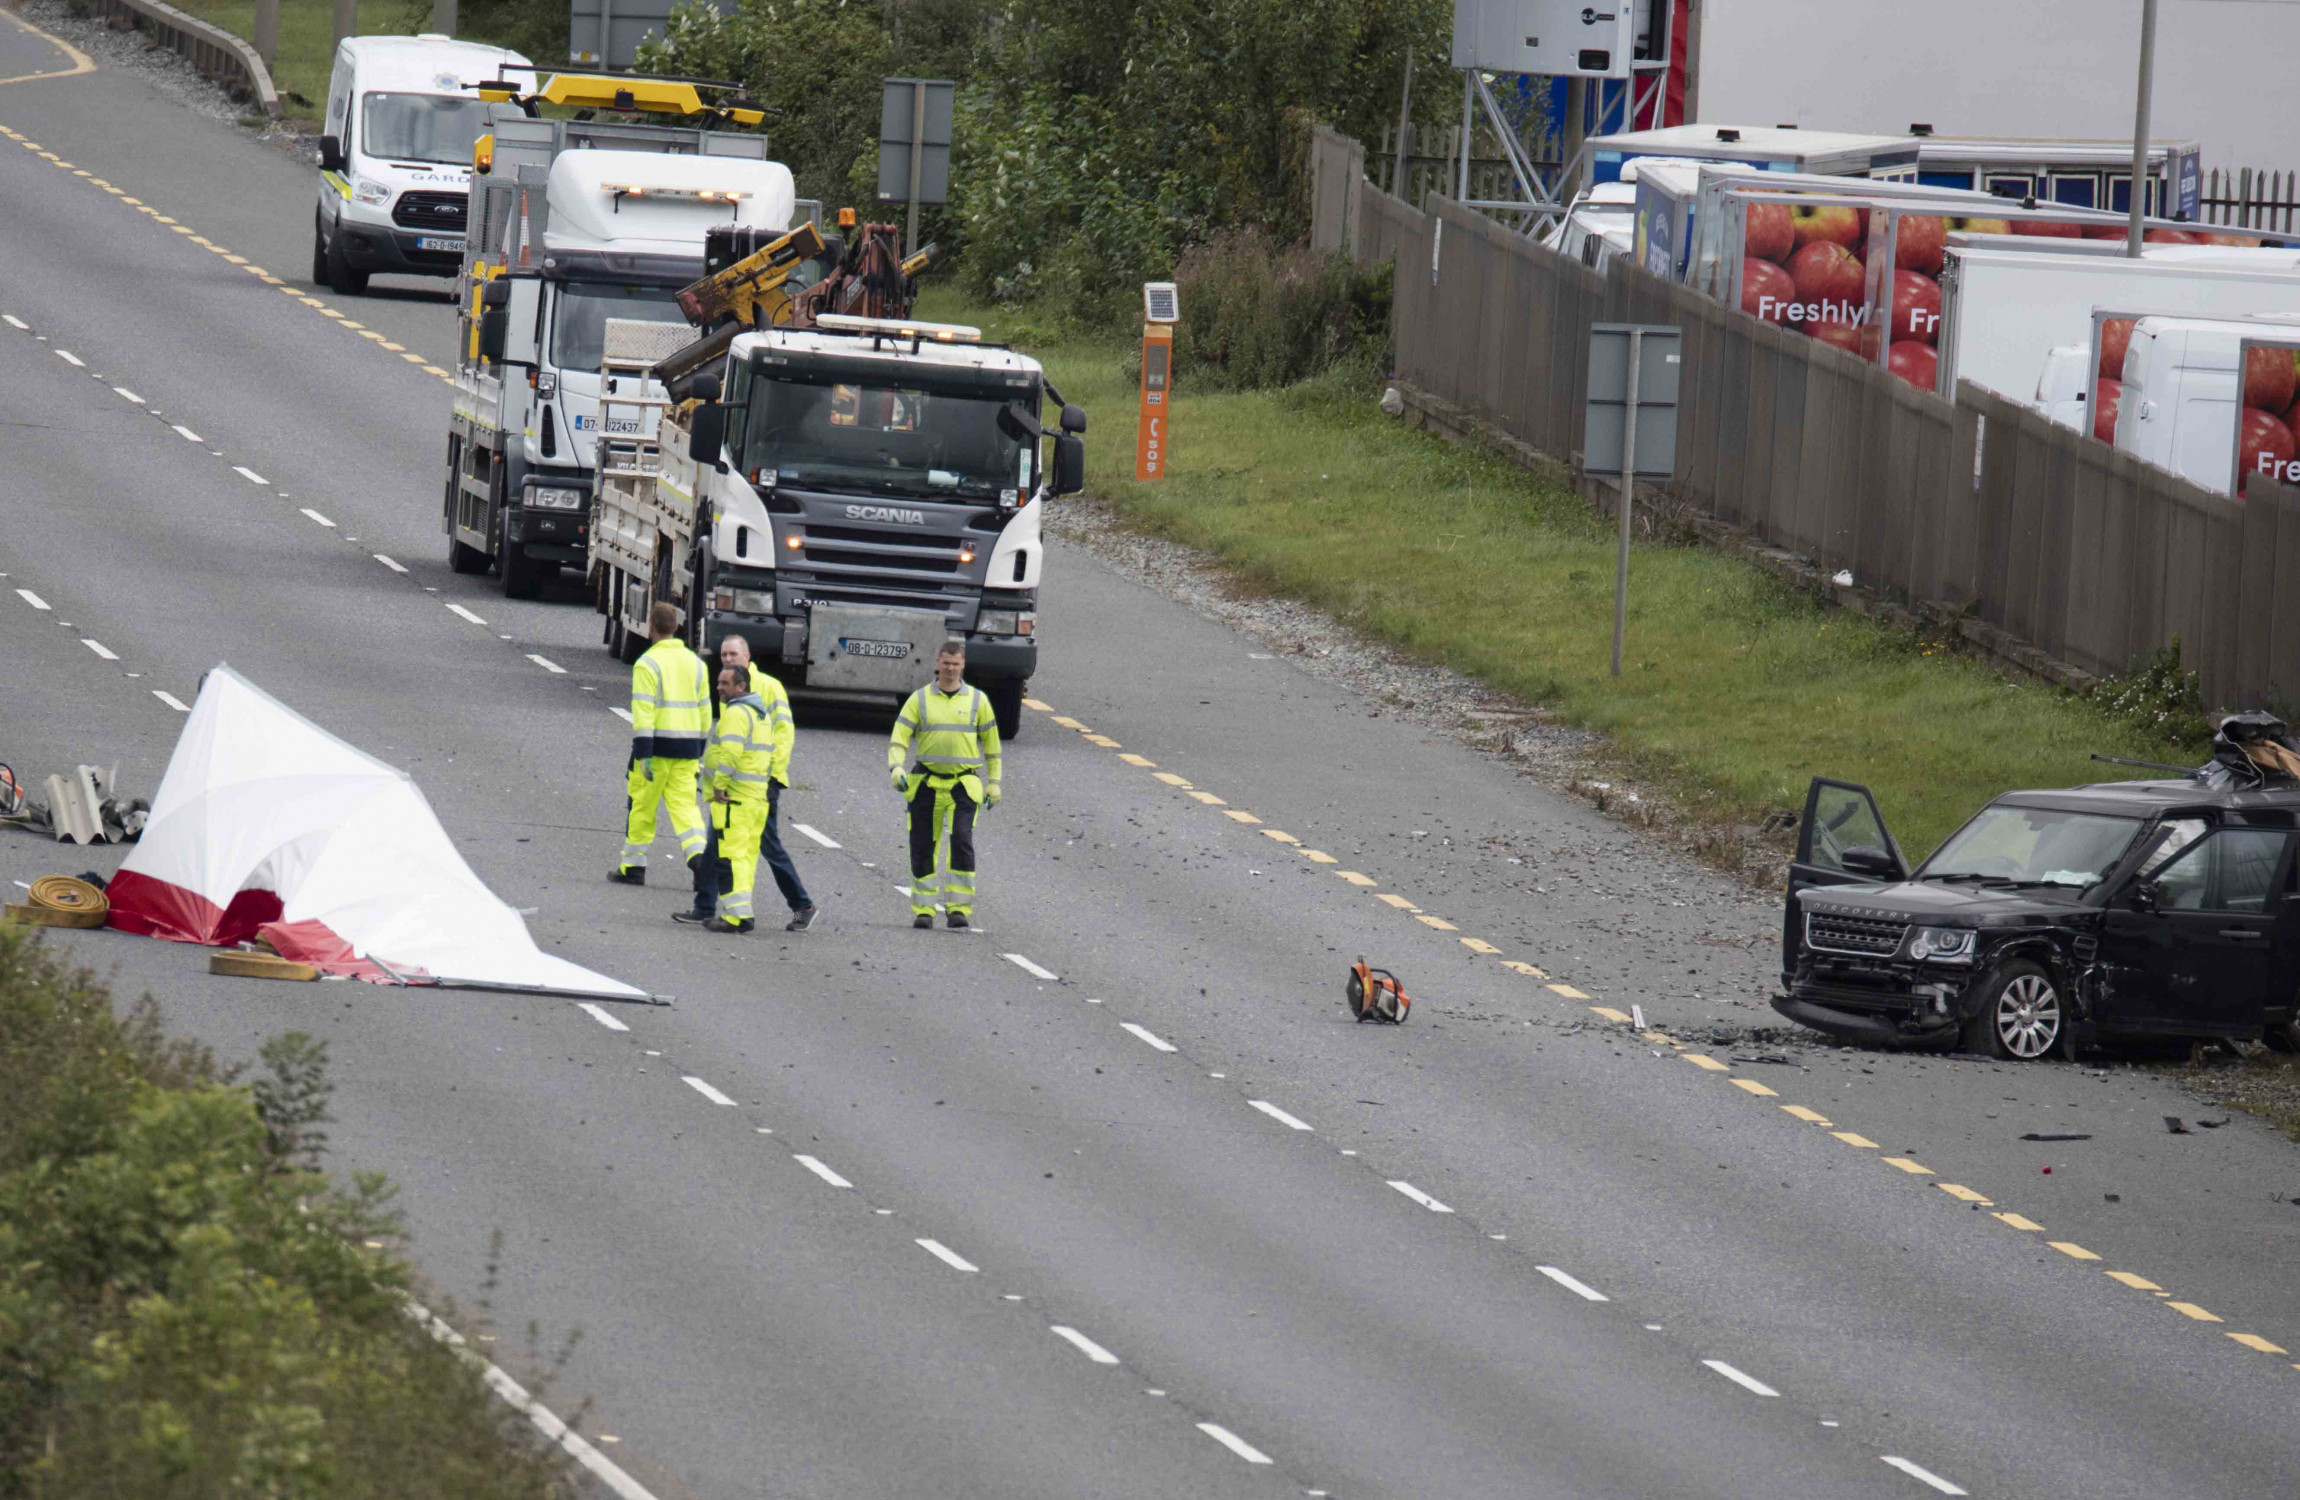 Man dead in fatal crash on N7 Naas Road this morning